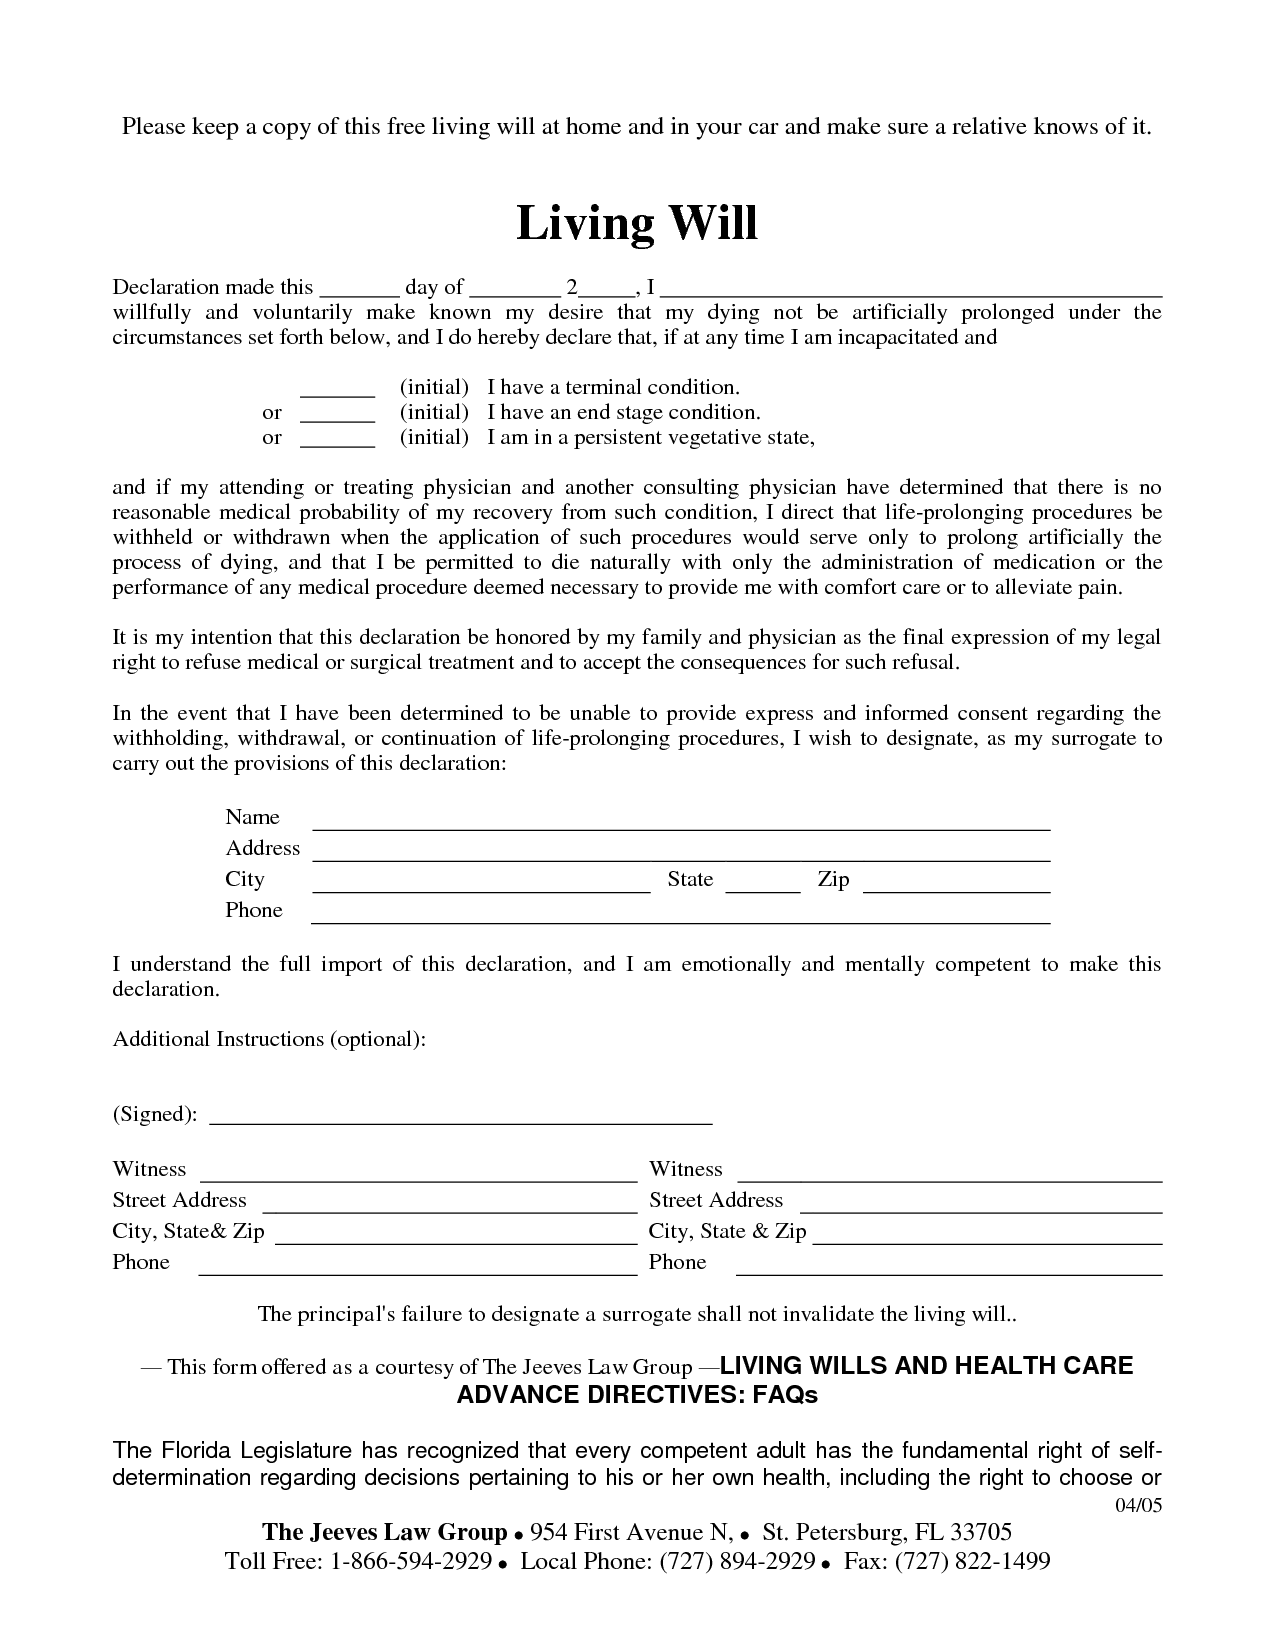 Free Copy Of Living Will By Richard Cataman Living Will Sample Estate Planning Checklist Funeral Planning Checklist Free Printables